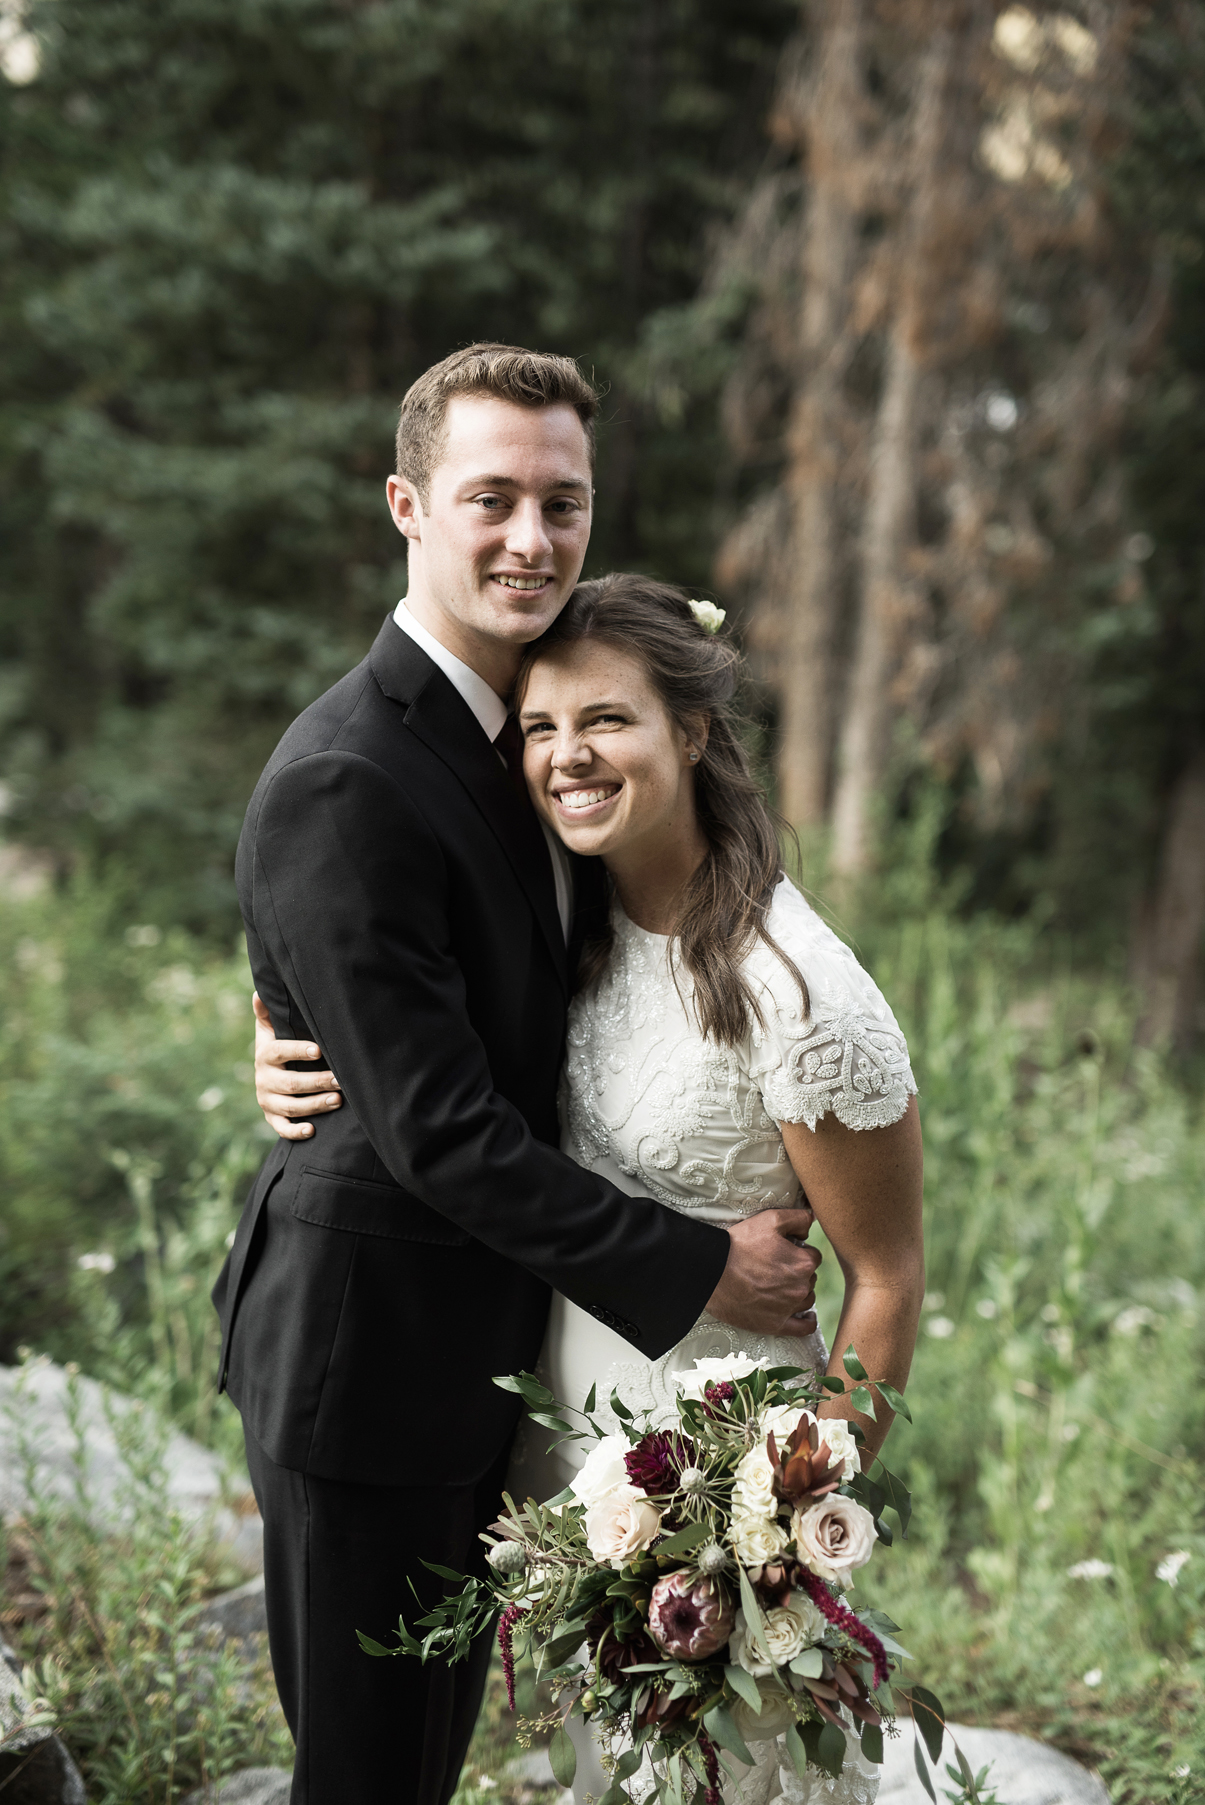 posed portrait from a couples wedding